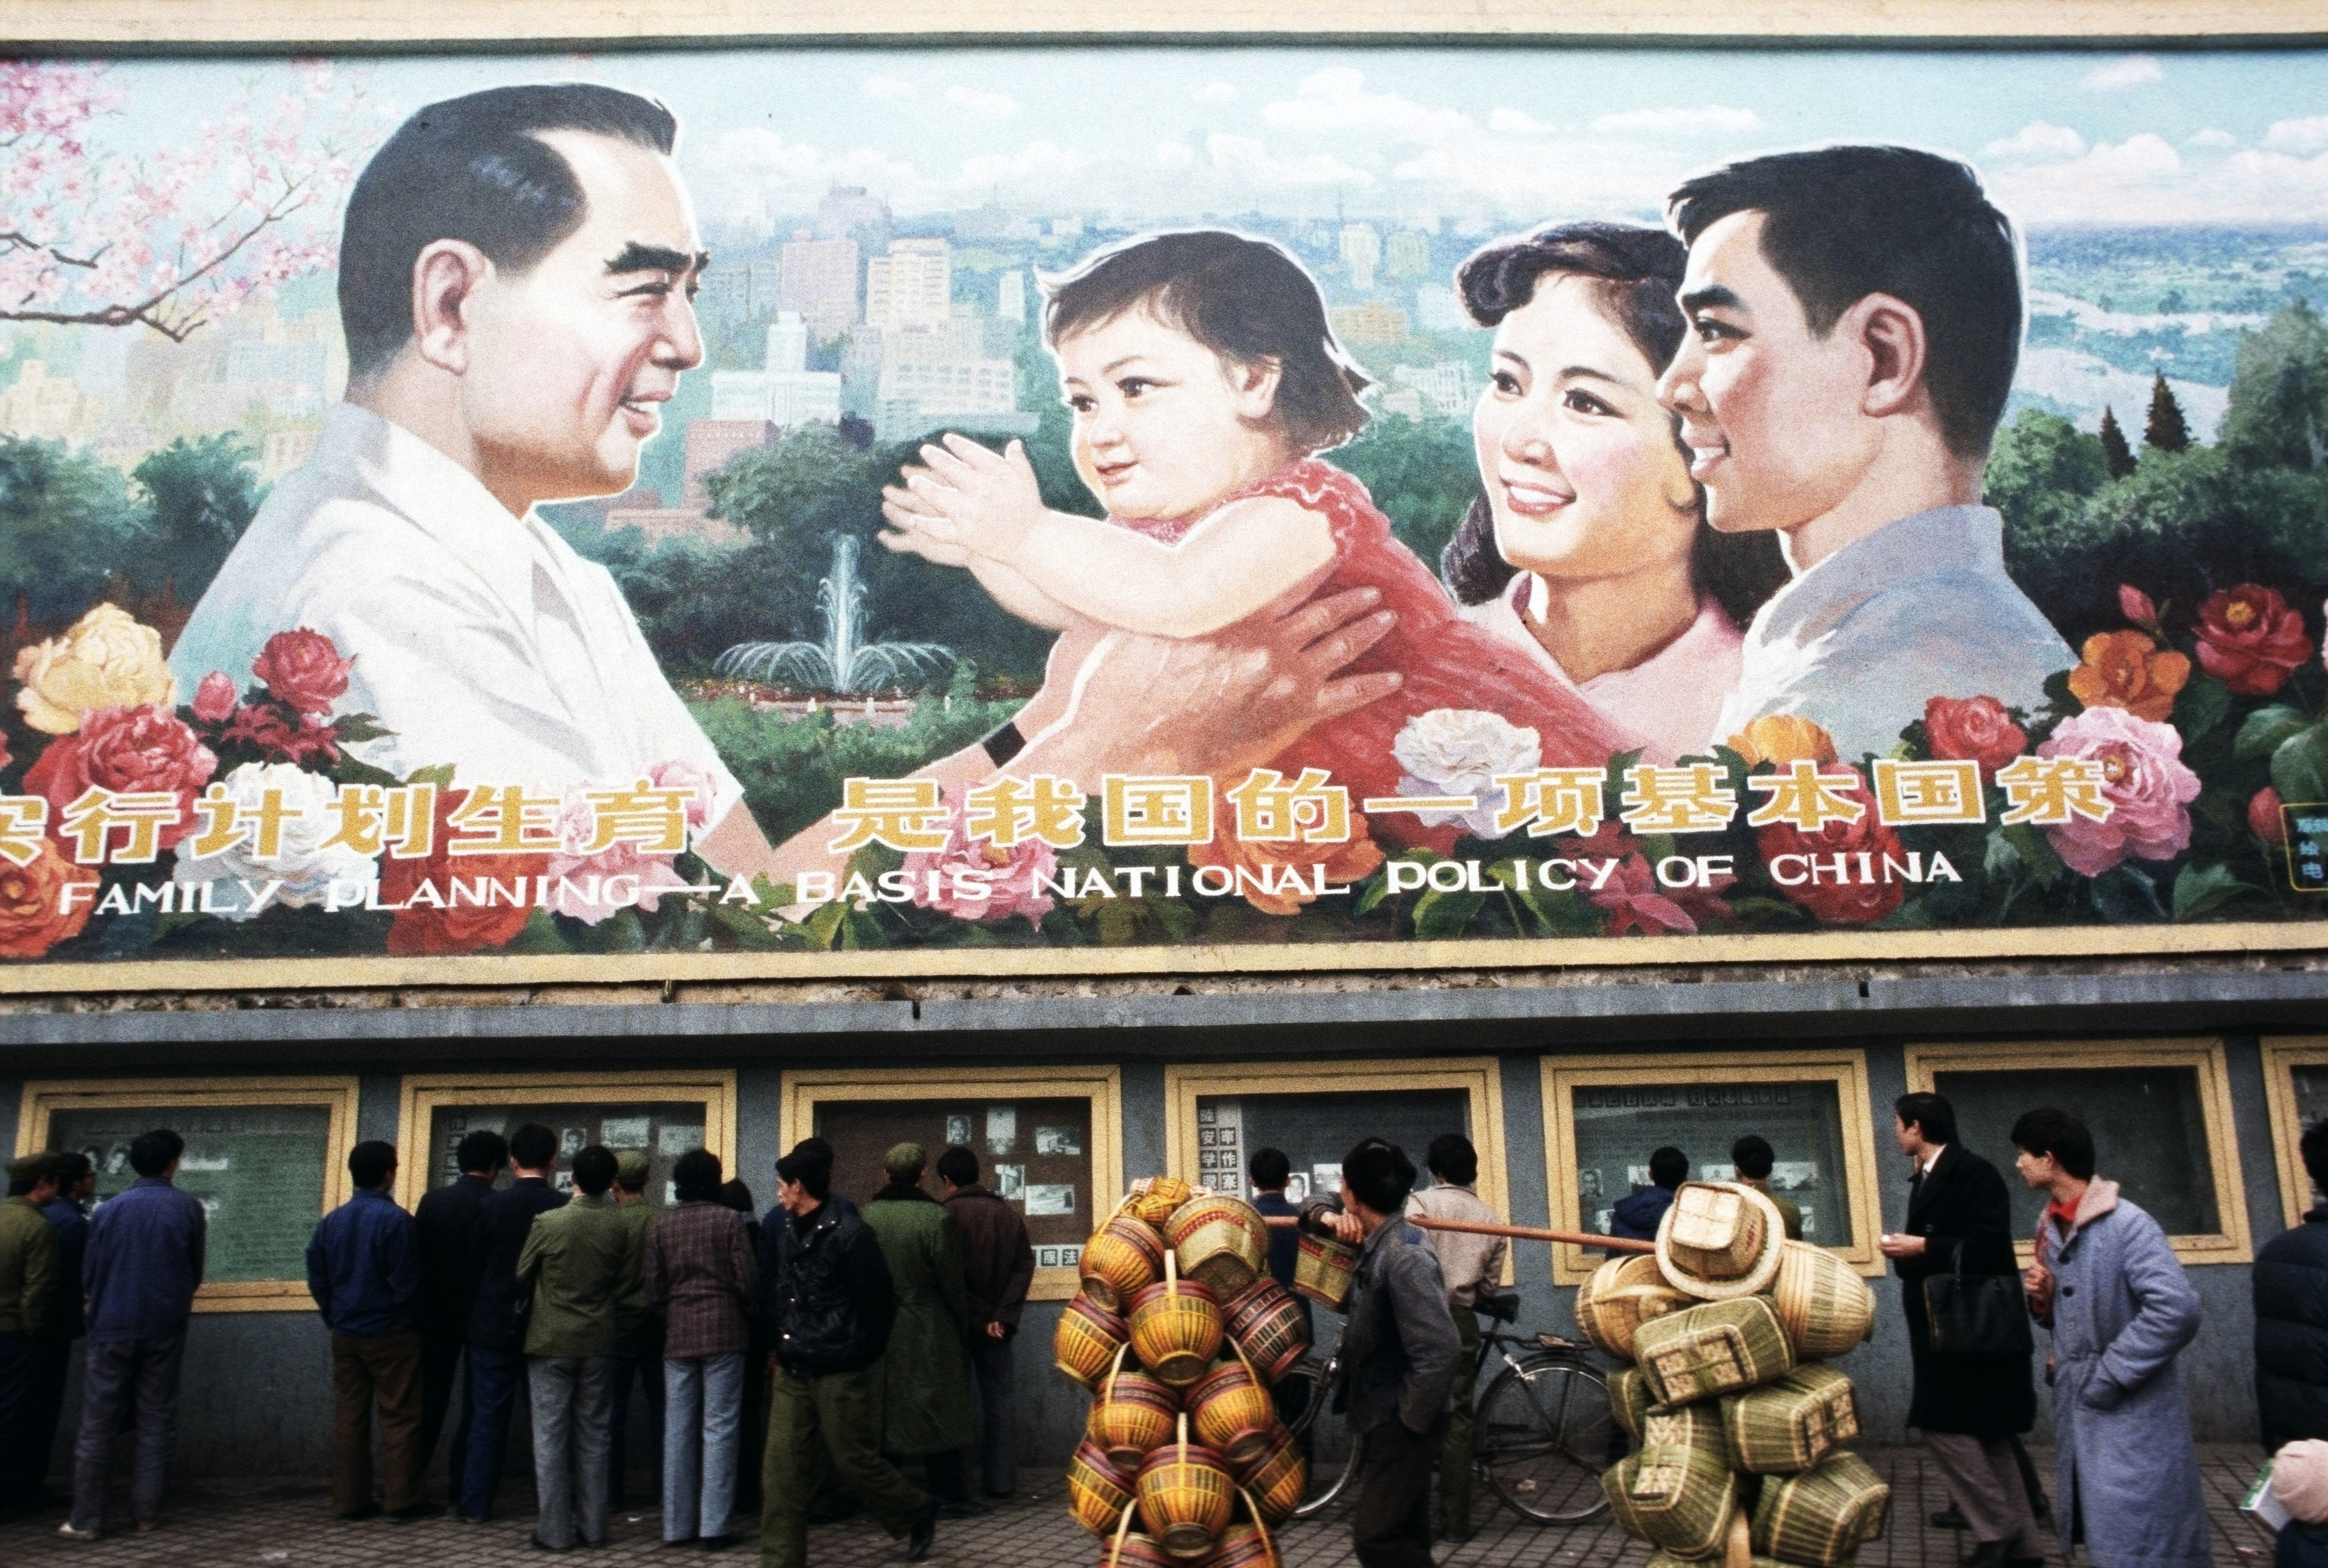 Pedestrians and a man carrying baskets pass by a huge billboard extolling the virtues of China's  One Child Family  policy.